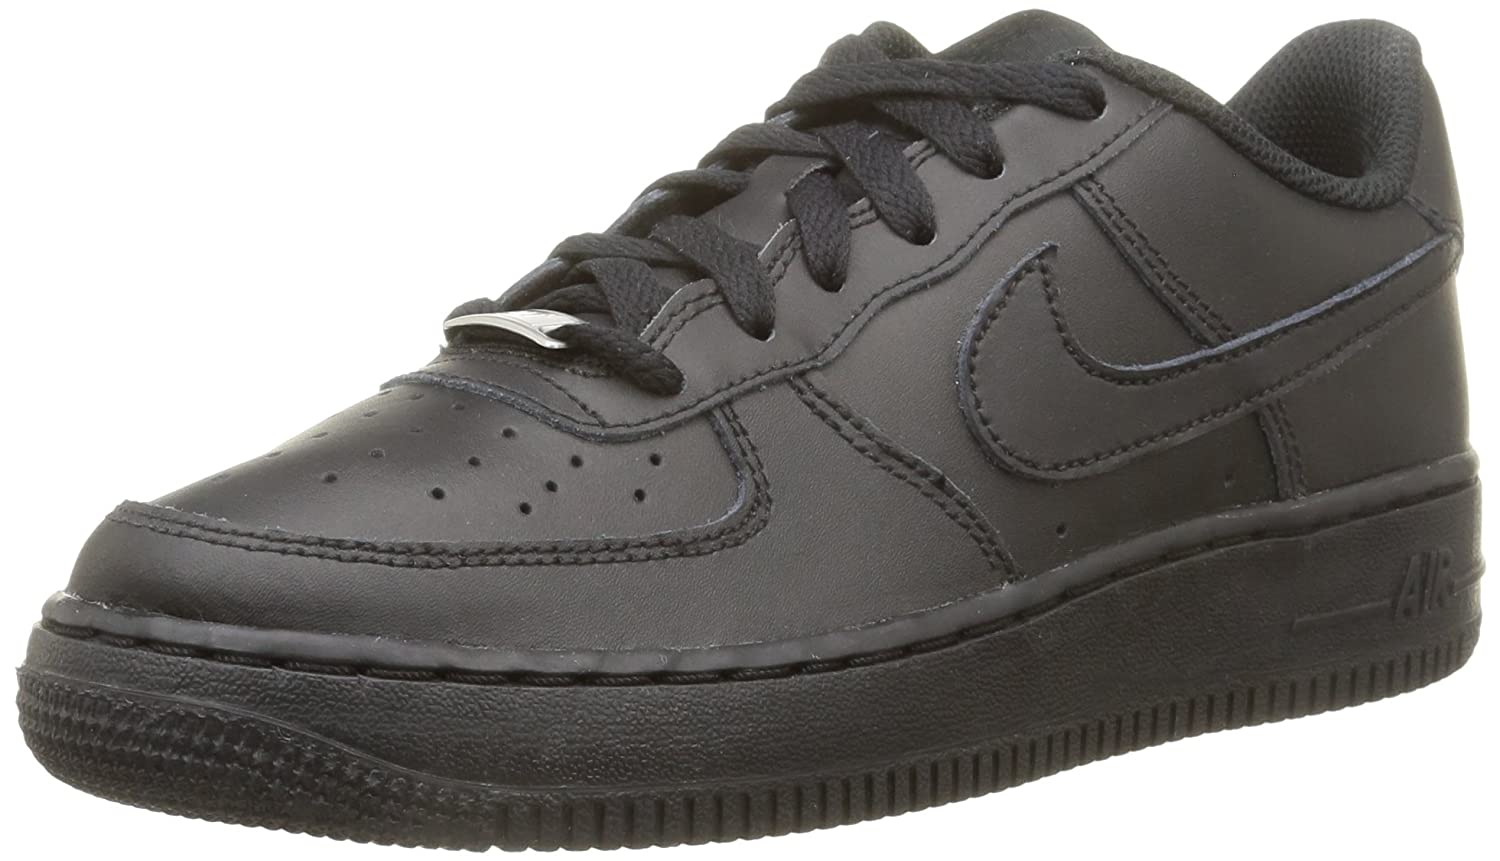 dbbbeb6a63e7 Amazon.com  Nike Air Force 1 Low GS Lifestyle Sneakers  NIKE  Shoes